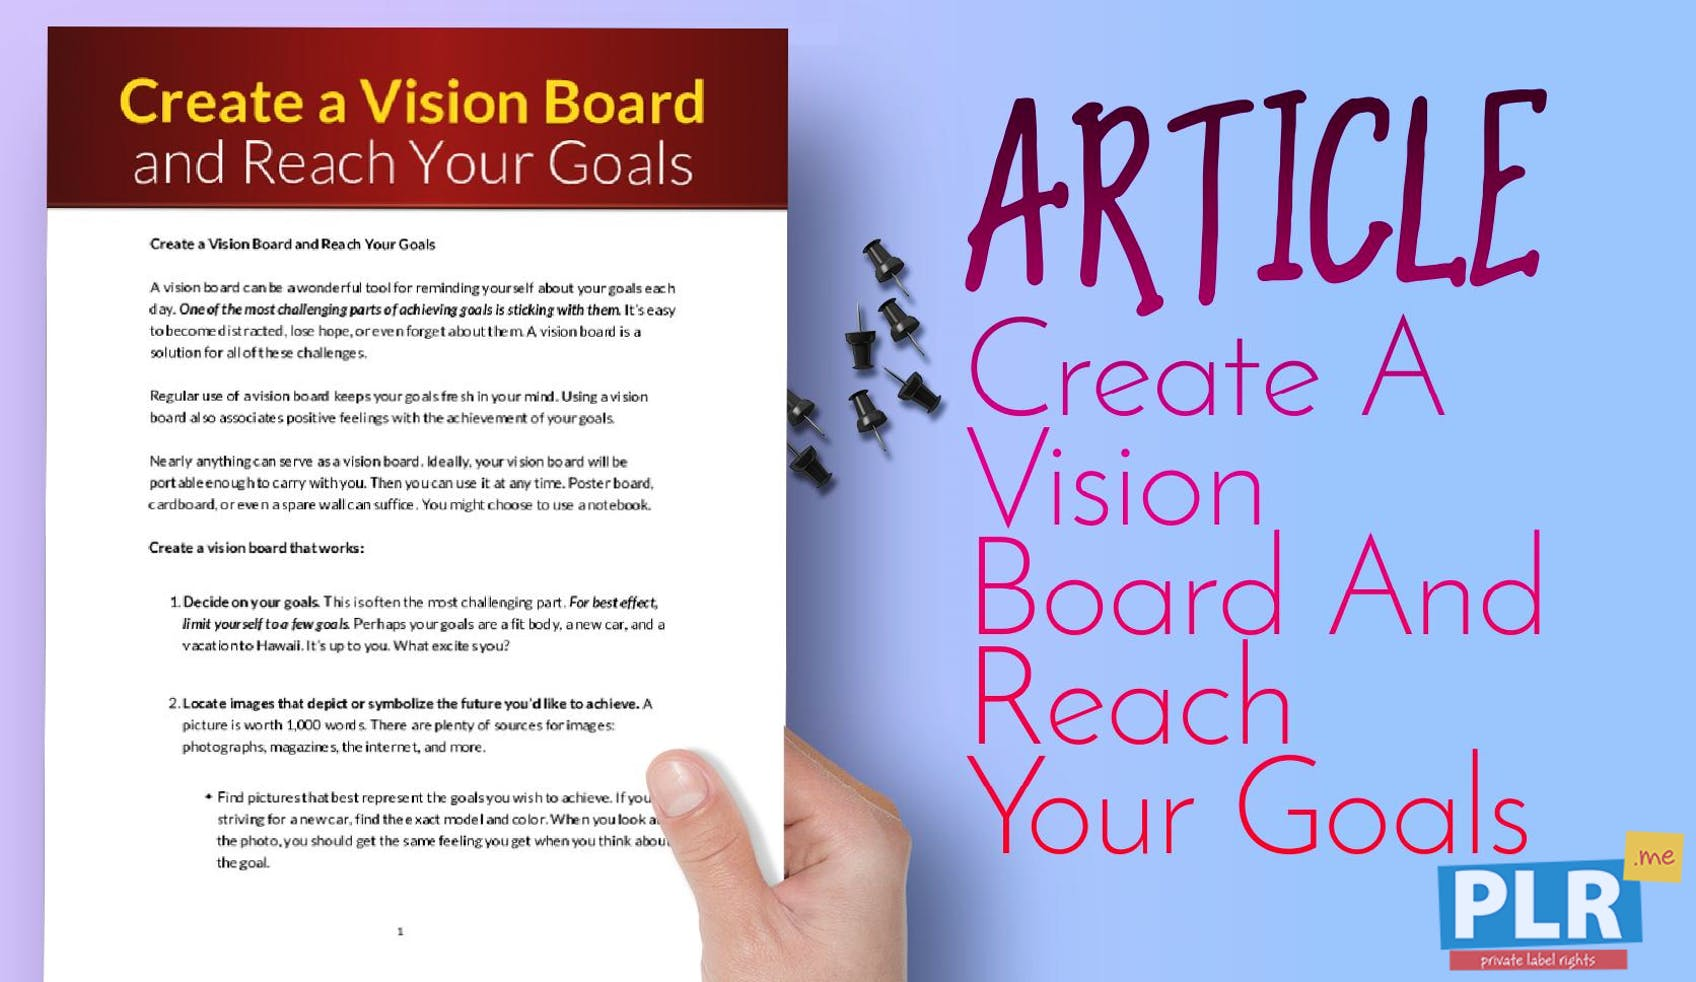 PLR Articles & Blog Posts - Create A Vision Board And Reach Your Goals - PLR .me